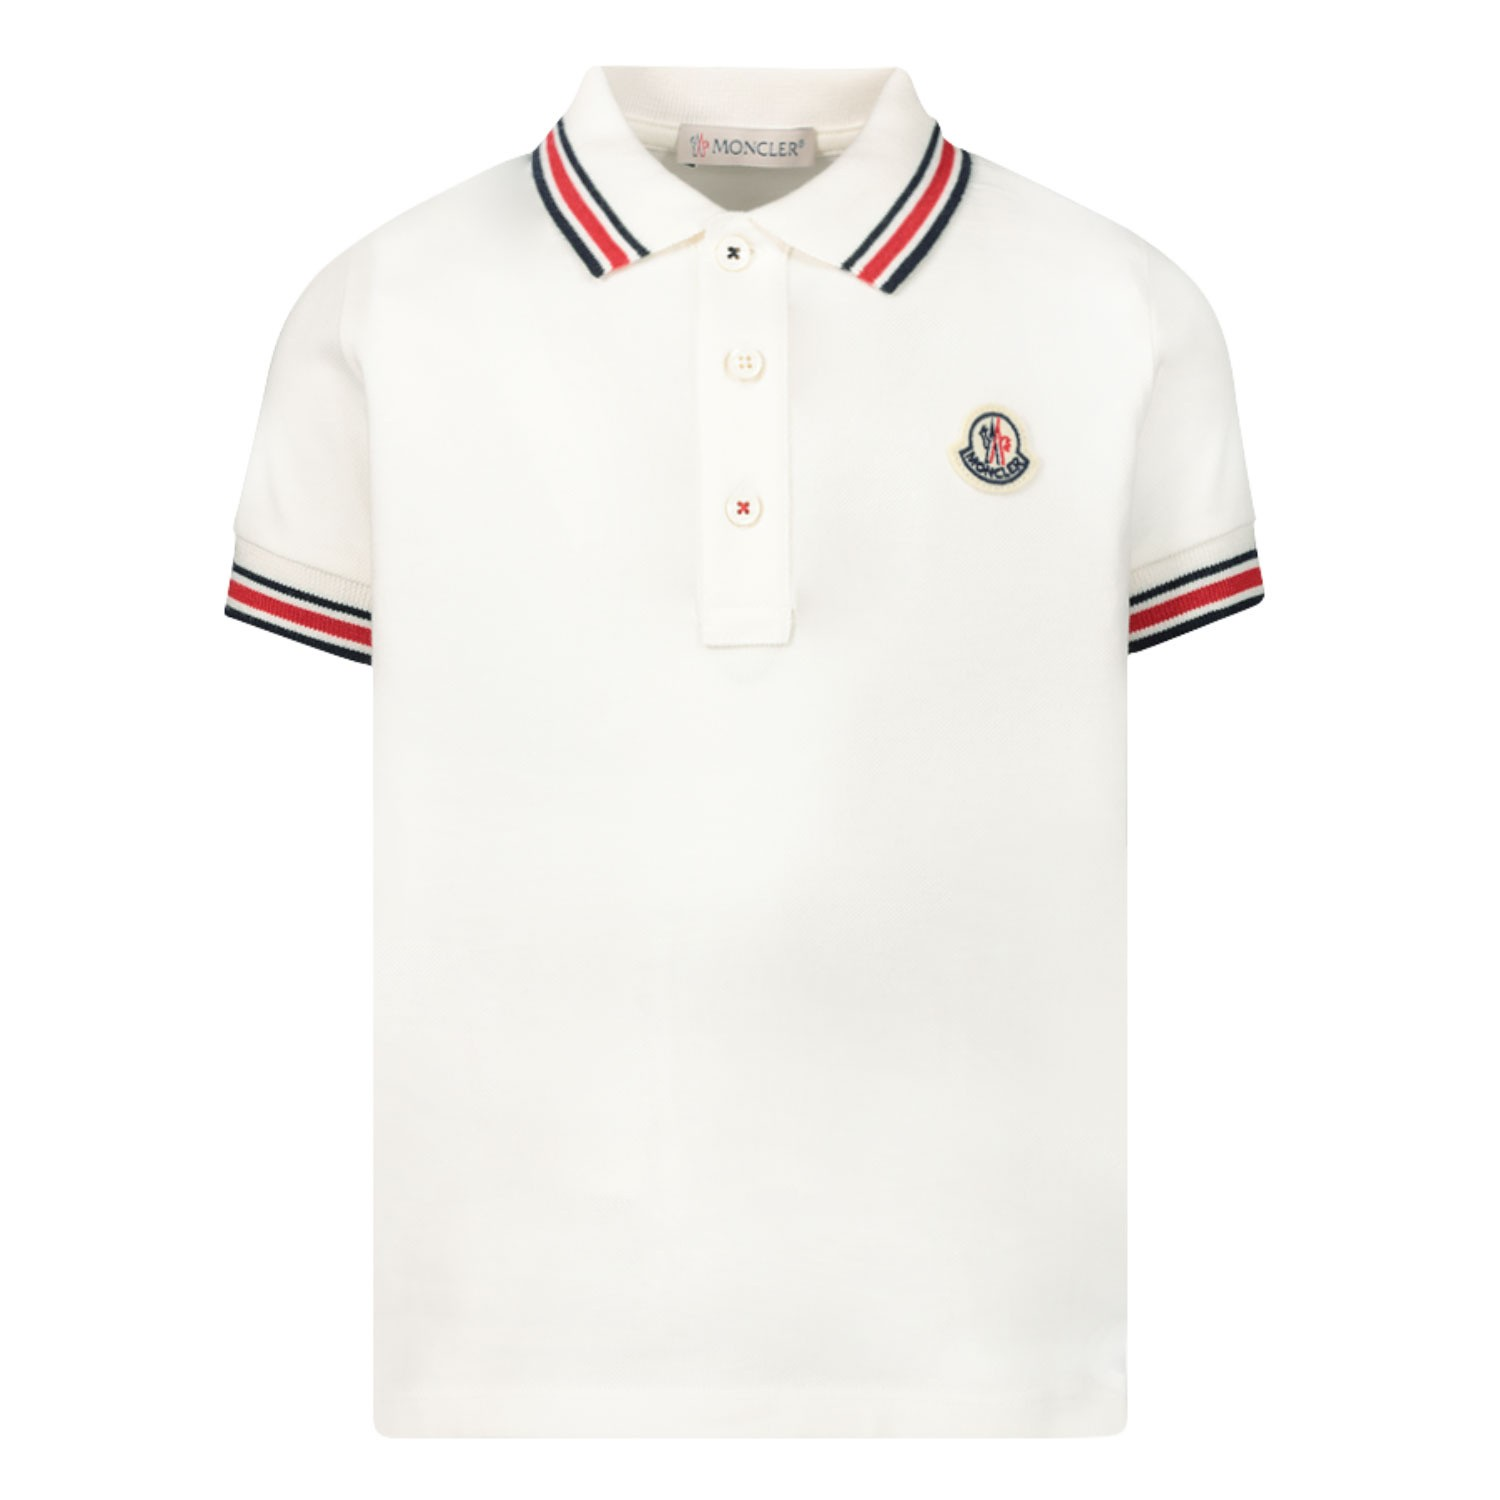 Afbeelding van Moncler 8A70320 baby polo wit